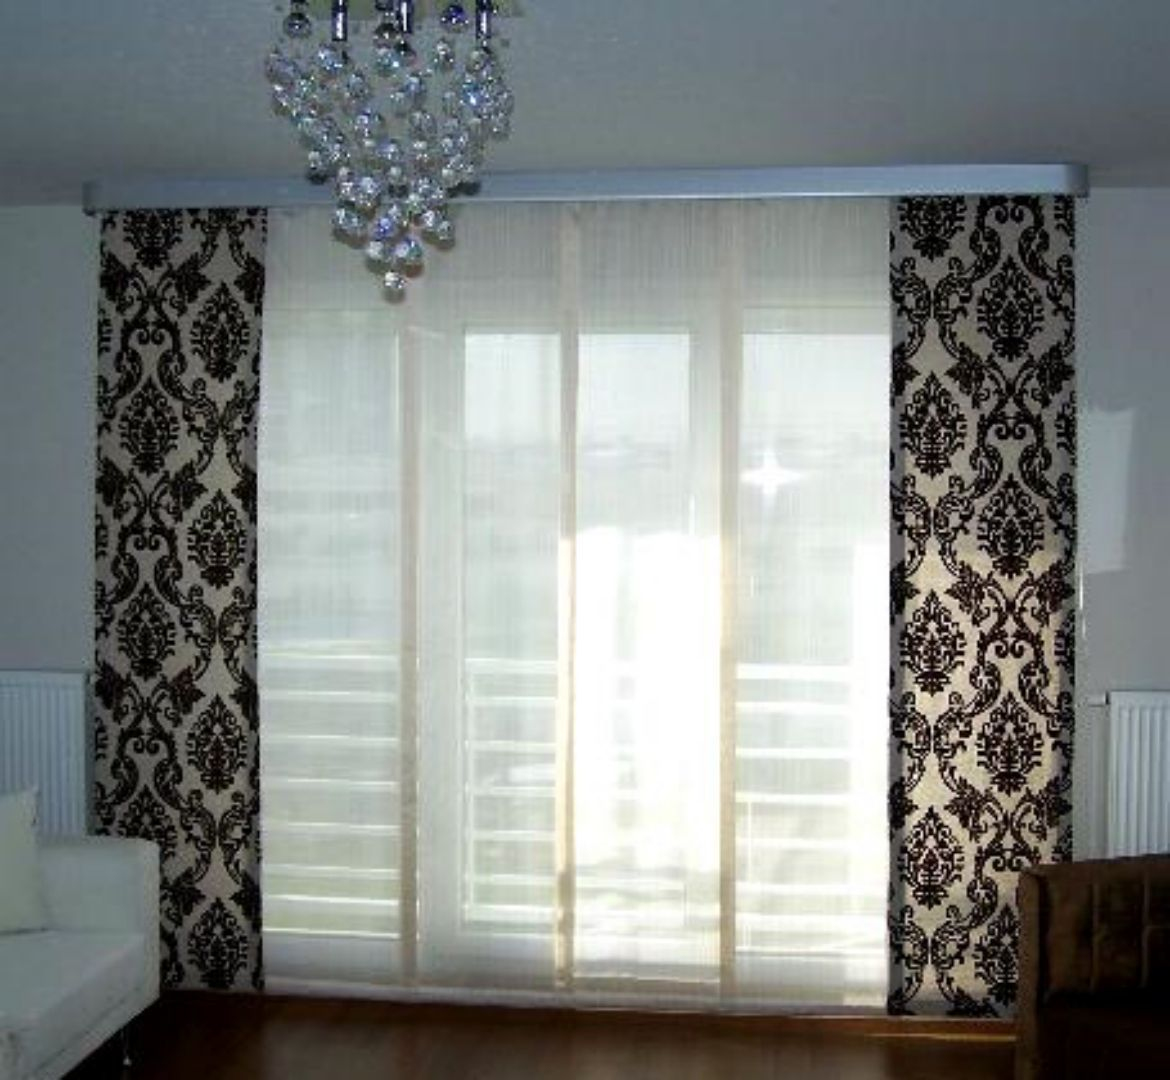 Modern patteren curtain with sheer in between Modern Curtain ... for Modern Curtains For Bedroom 2015  570bof